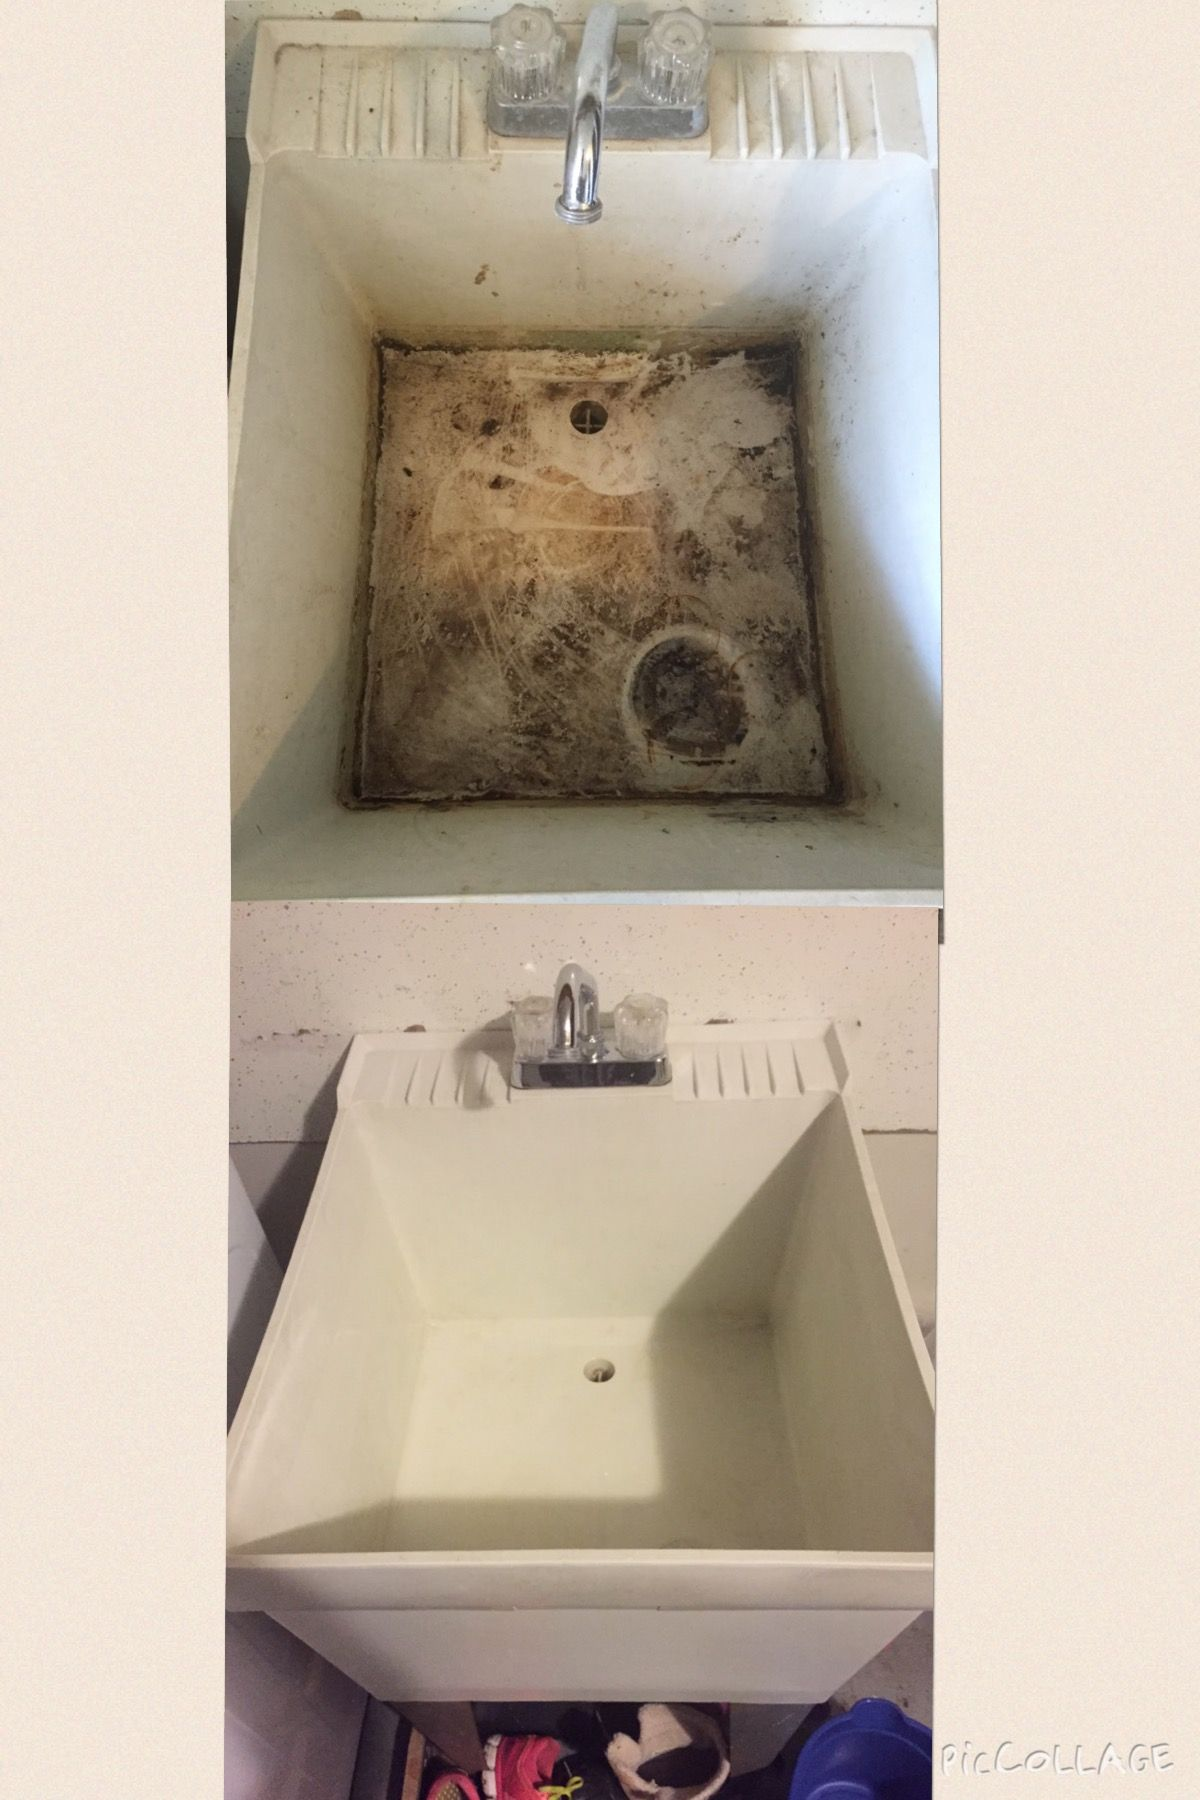 Bar Keepers Friend Cleans Up An Old Utility Sink With Images